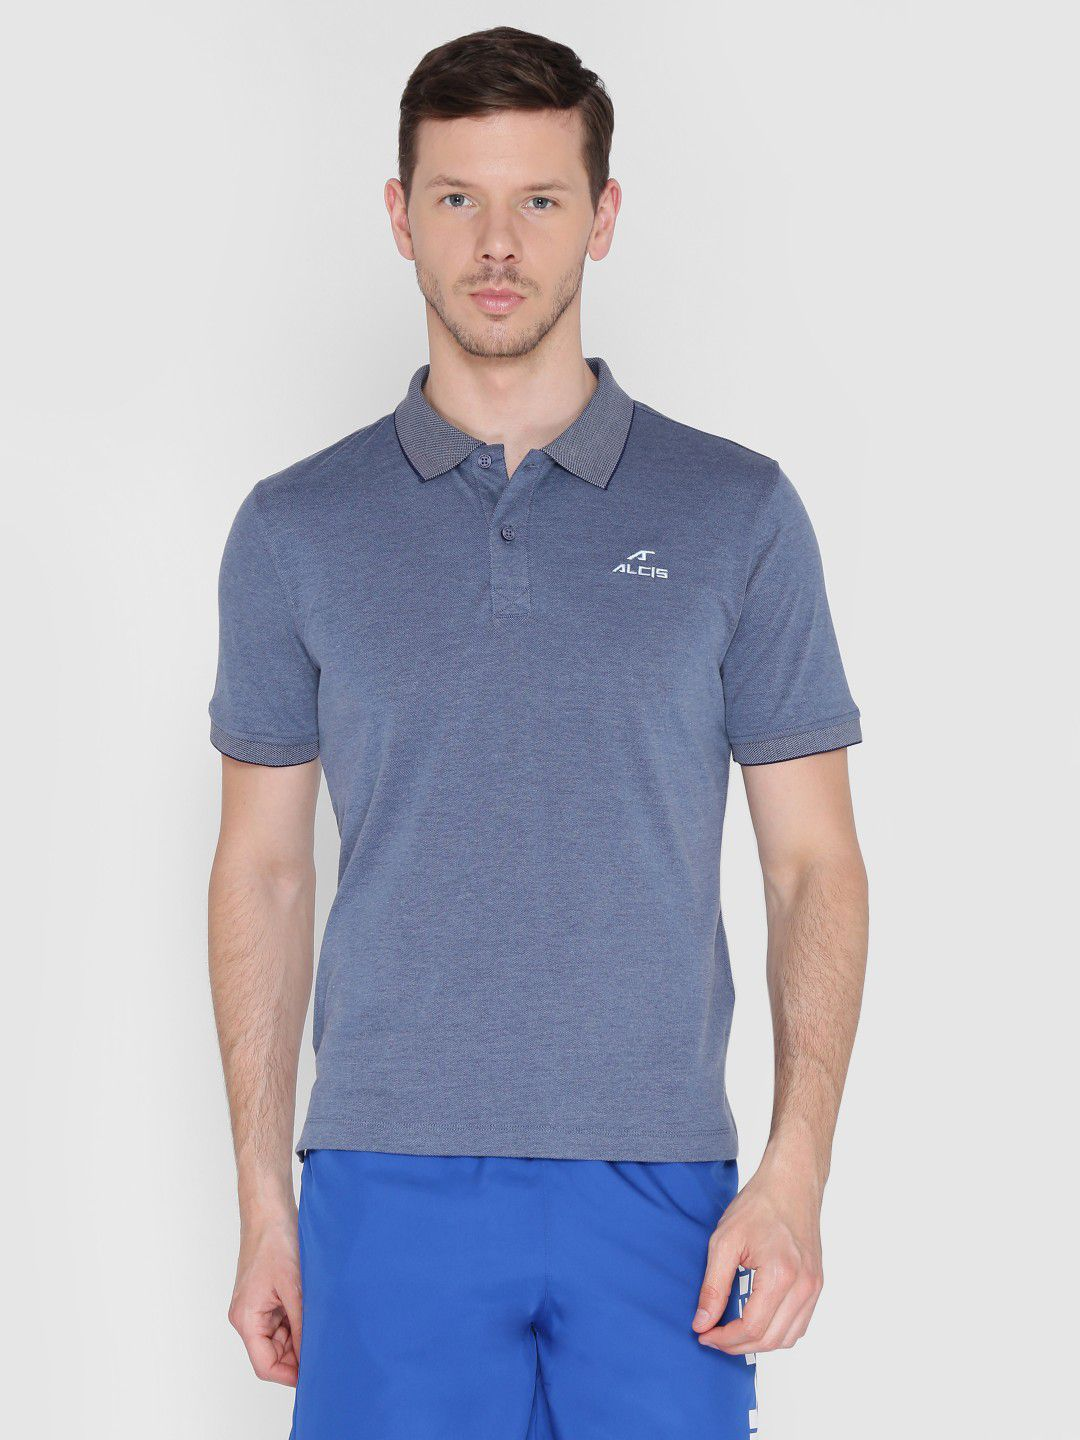 Alcis Mens Solid Blue Polo T-Shirt